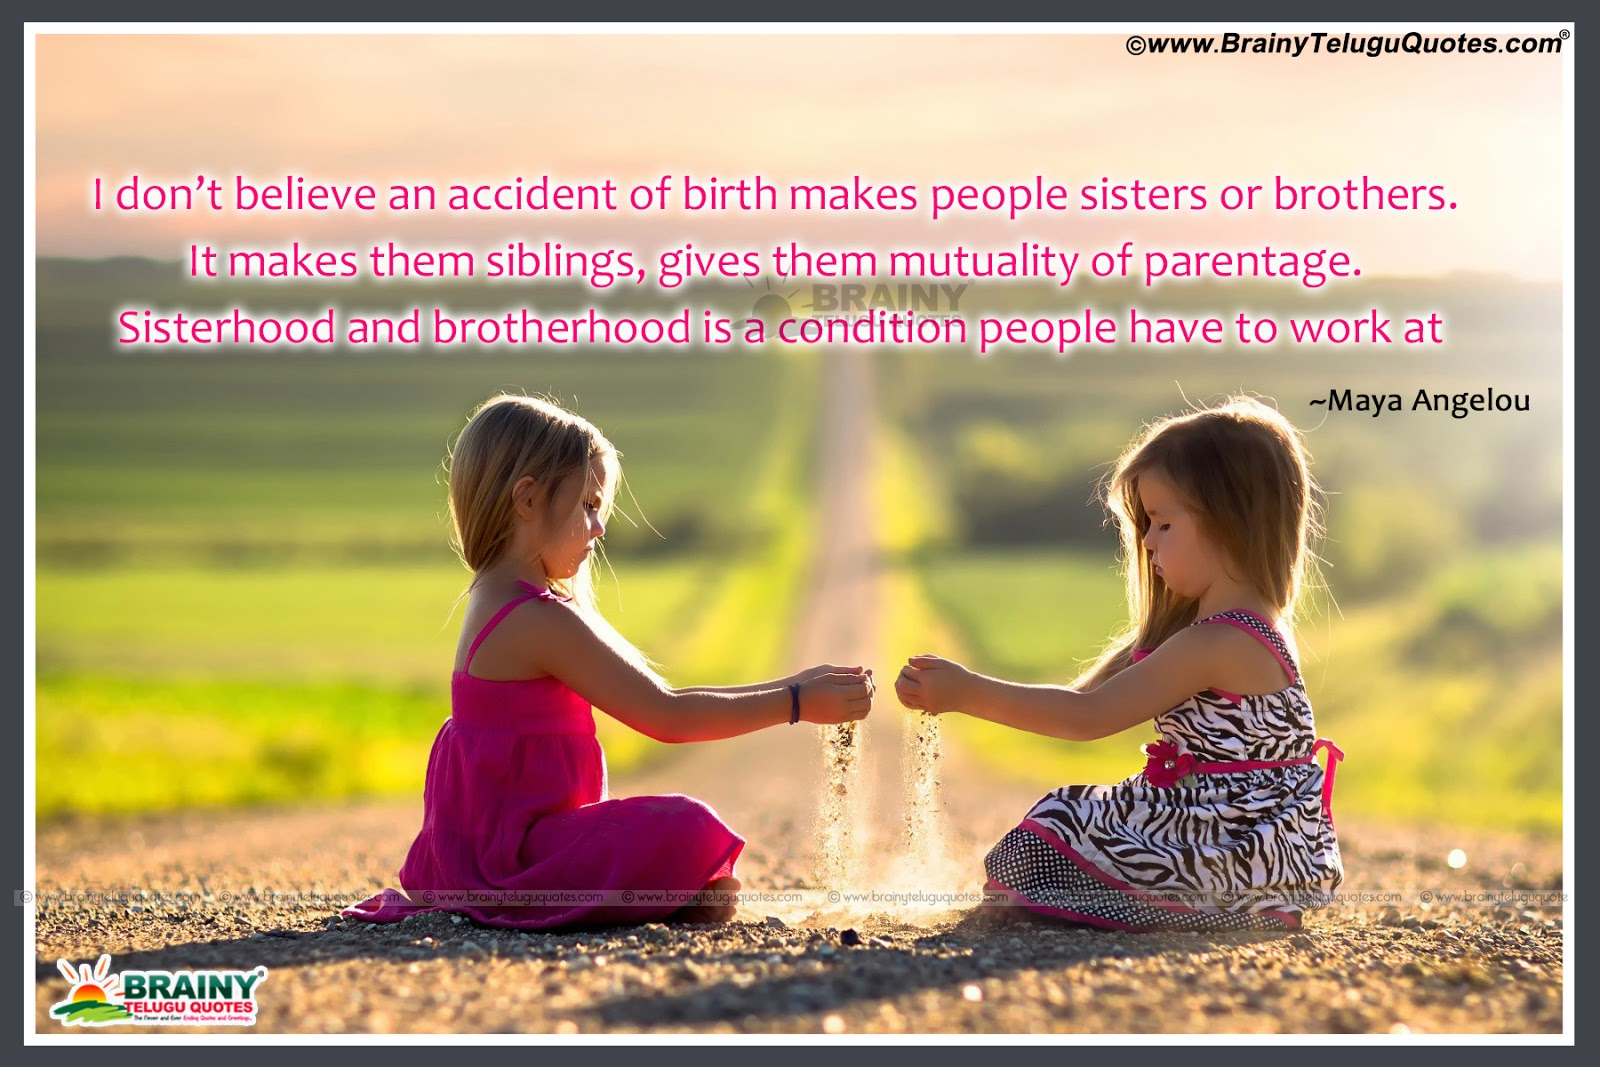 200+ Brother Quotes|Sibling Quotes For Your Cute Brother ...